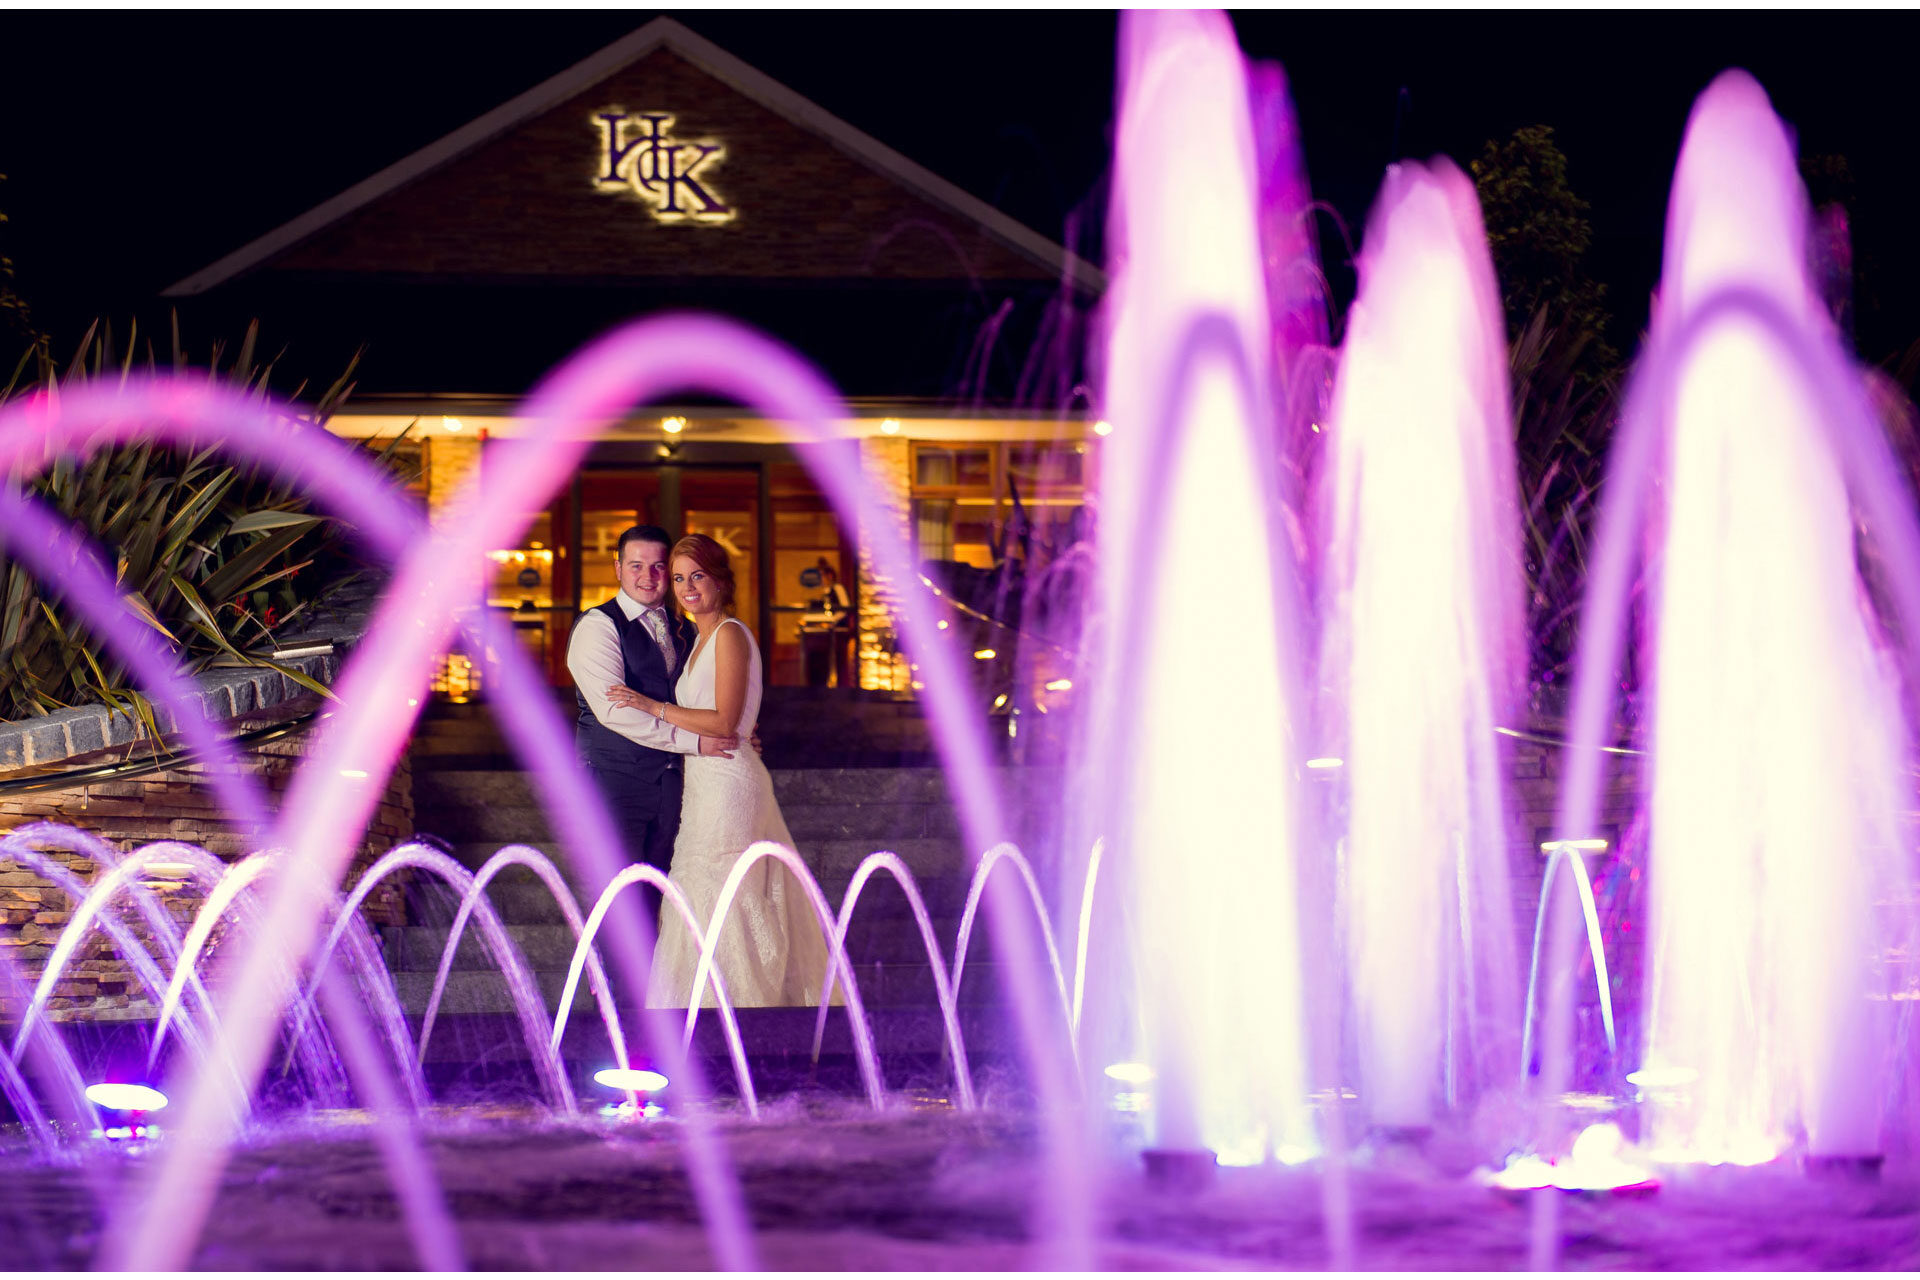 Photo of Becky and Ryan on their wedding day at Hotel Kilmore, Co. Cavan, Ireland. Last shot of the night.